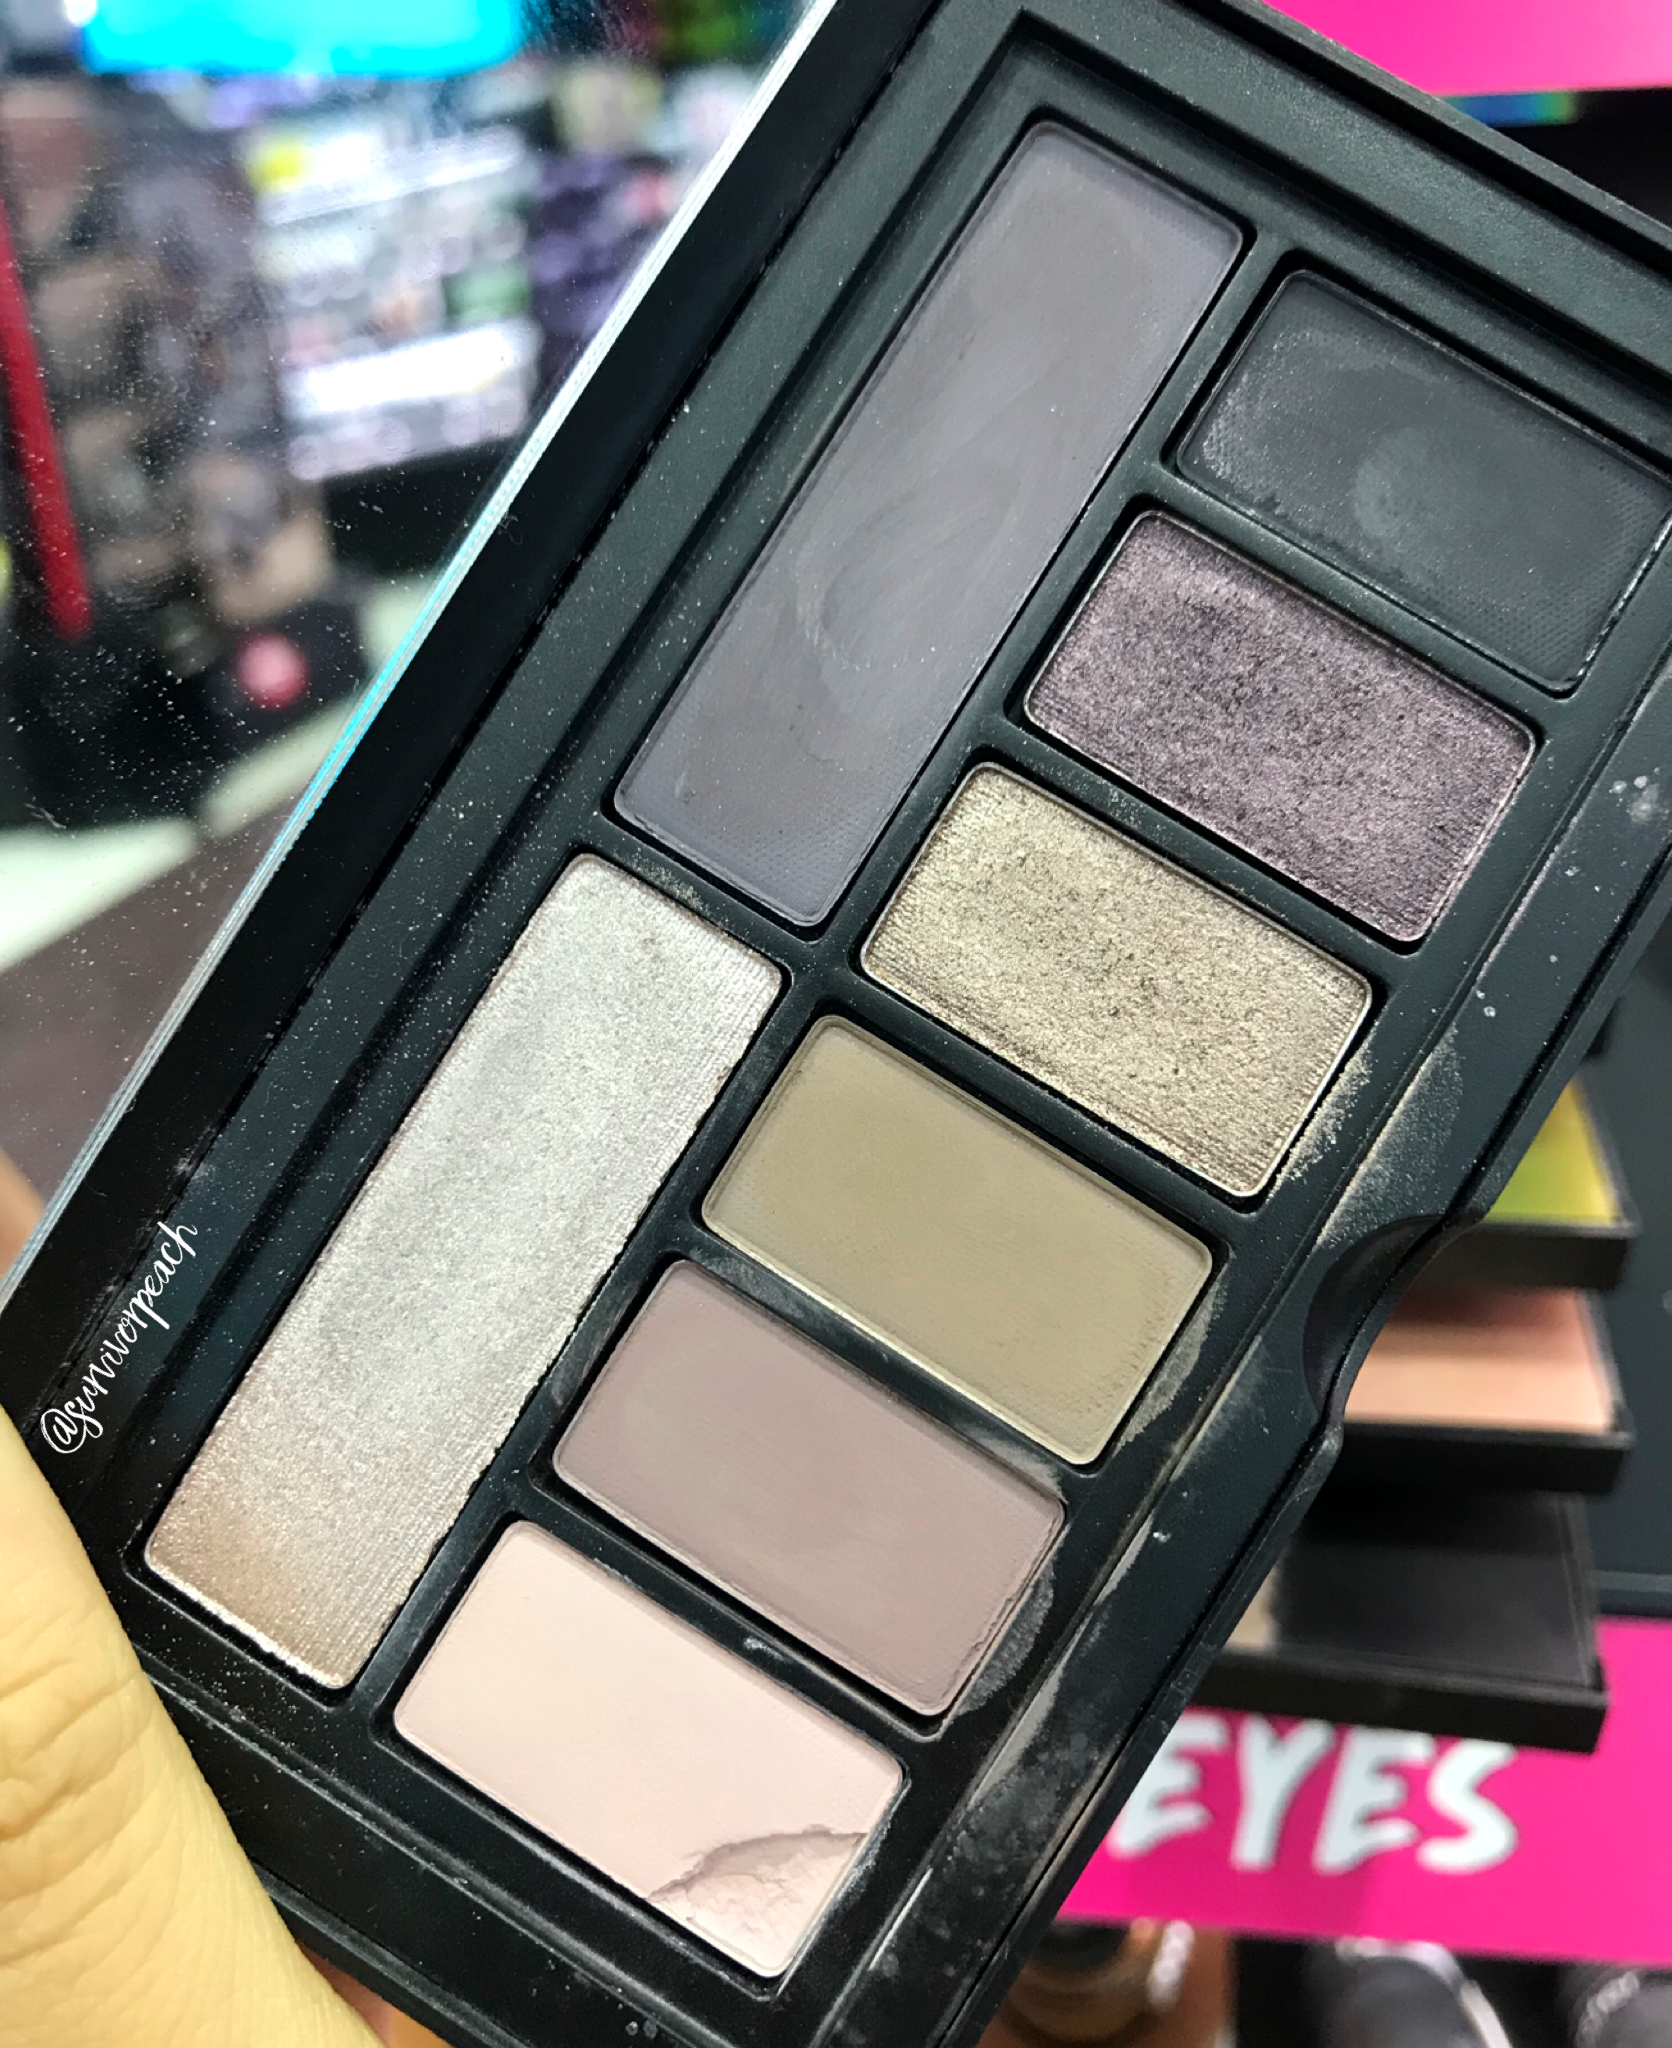 Smashbox Covershot palette: Punked